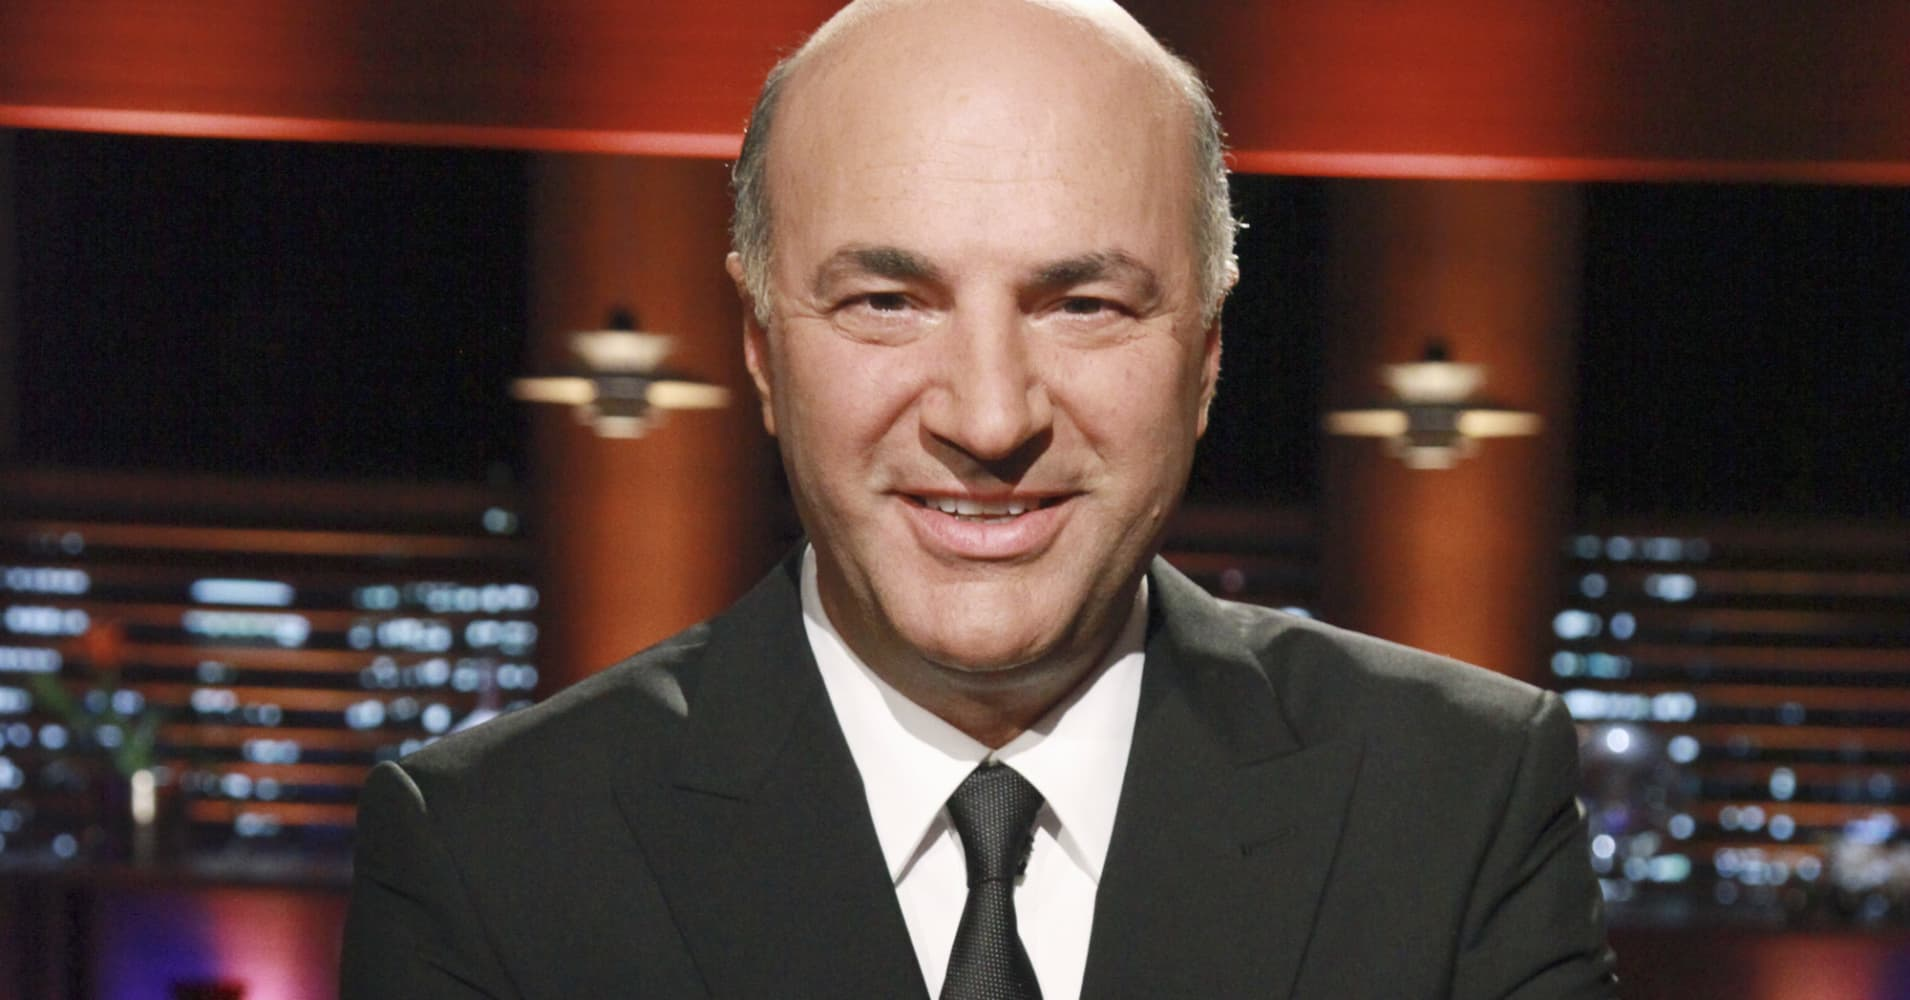 Kevin o leary bean stocks